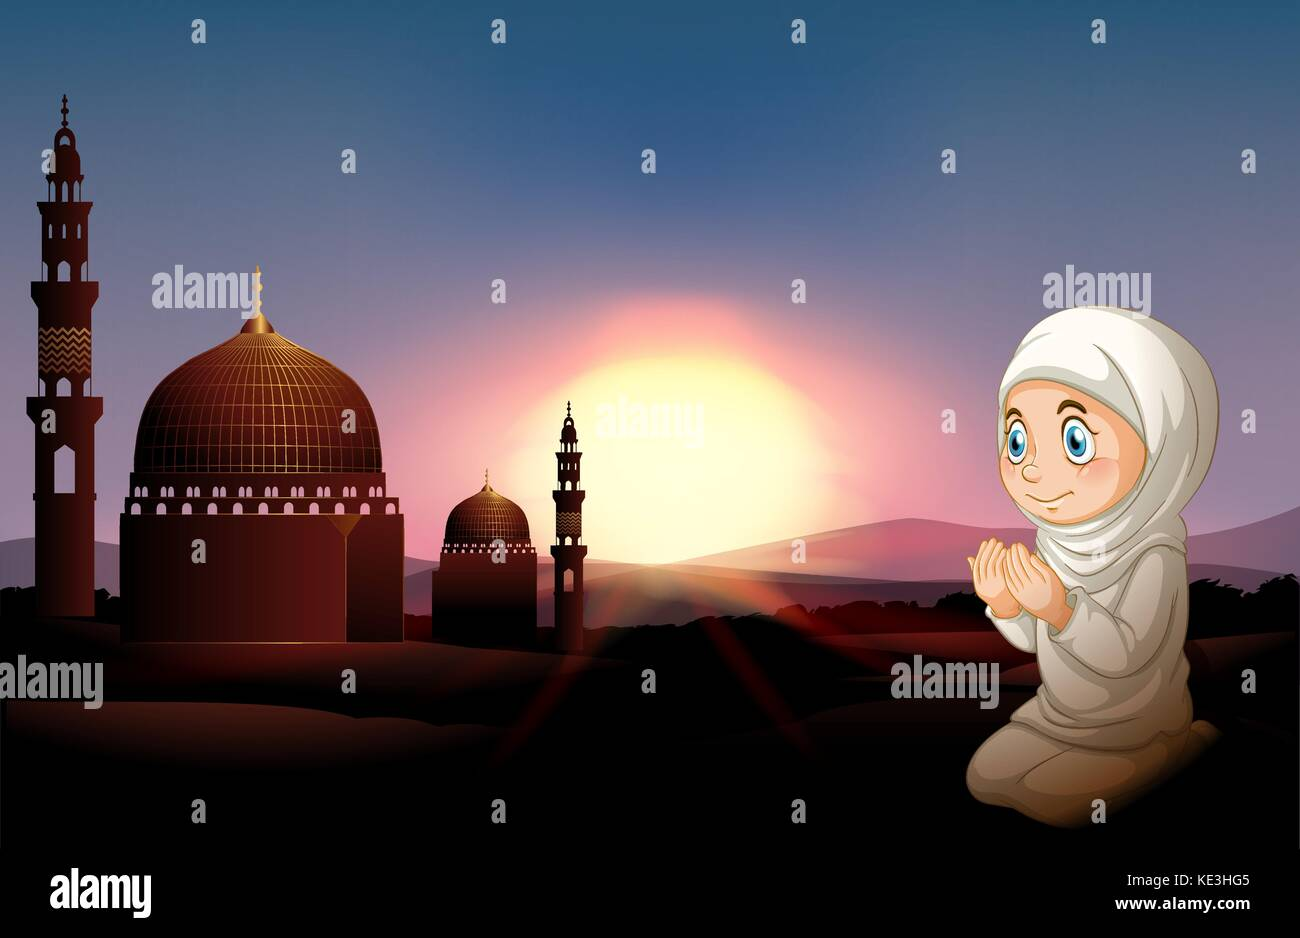 Muslim girl praying at the mosque illustration stock image